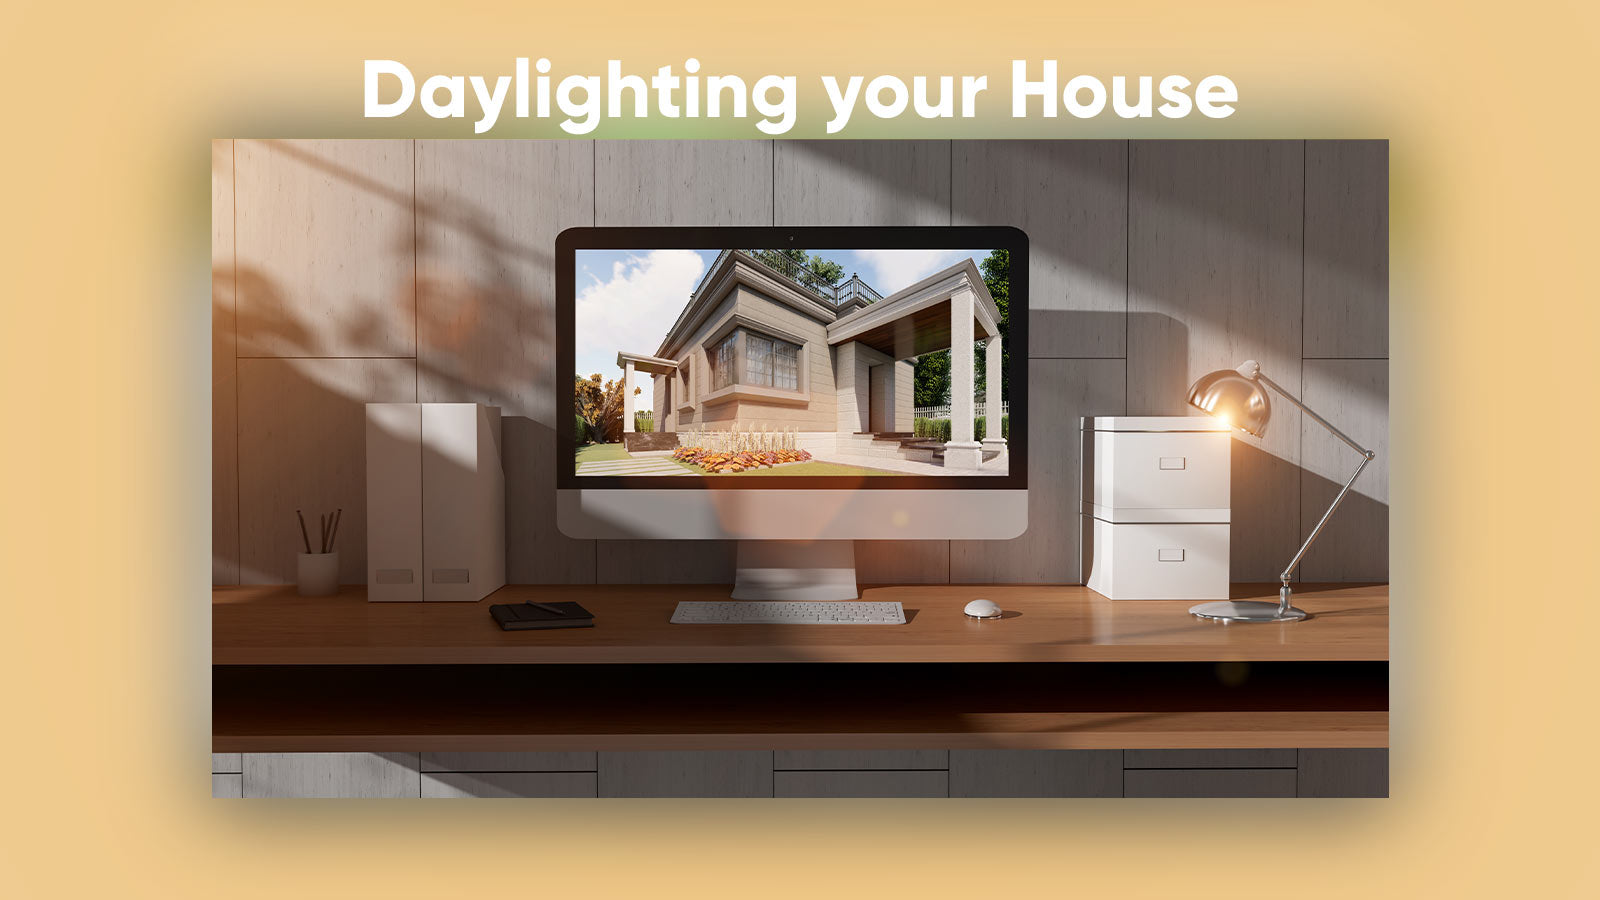 Daylighting home studio for higher productivity